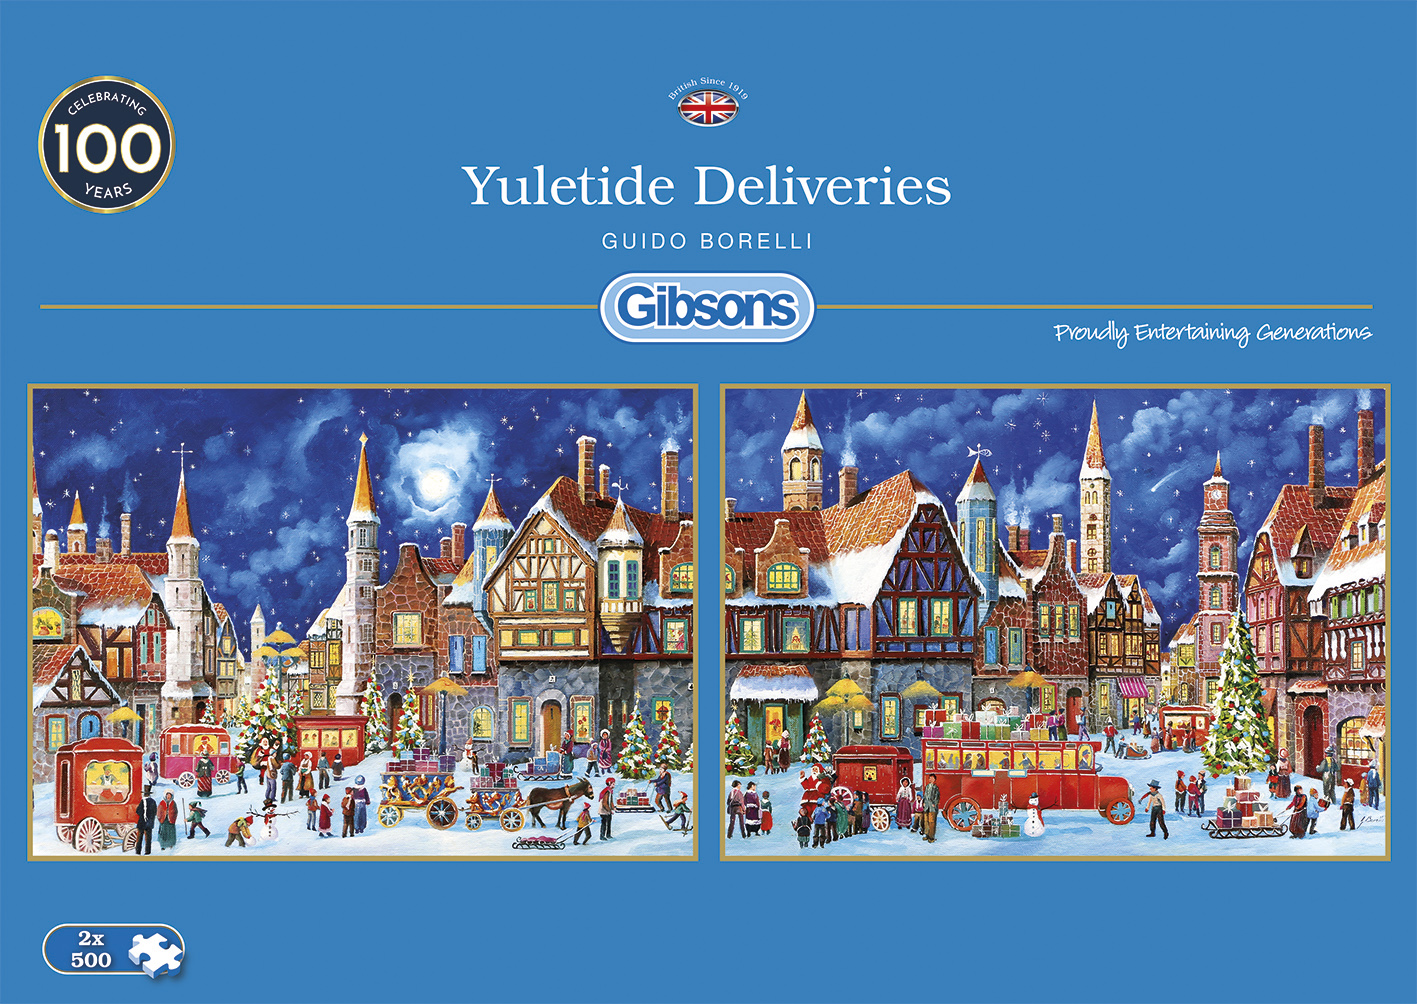 gibsons-yuletide-deliveries-2-x-500-teile-500-teile-puzzle-gibsons-g5053